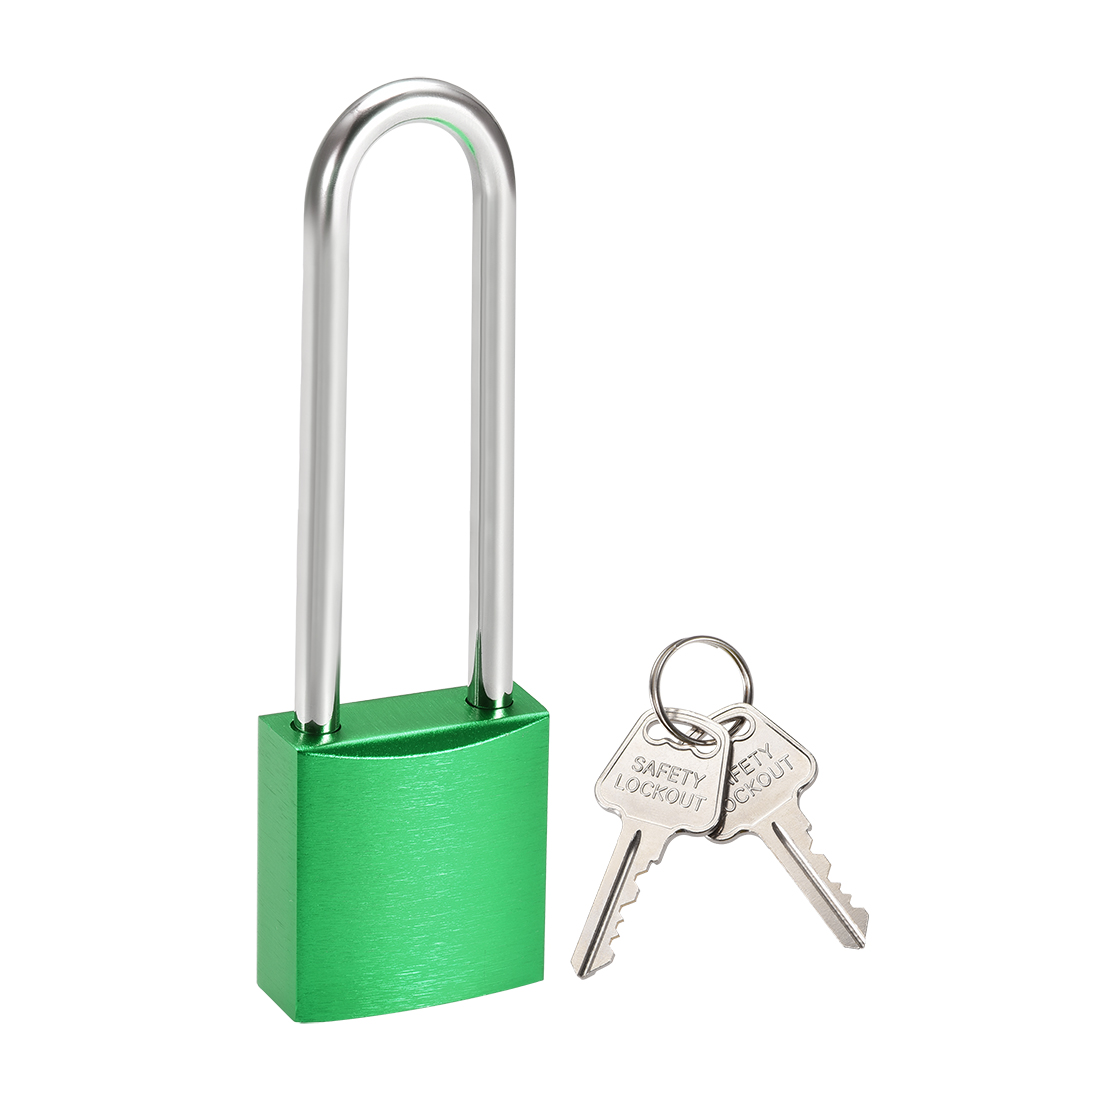 3 Inch Shackle Key Alike Safety Padlock Green